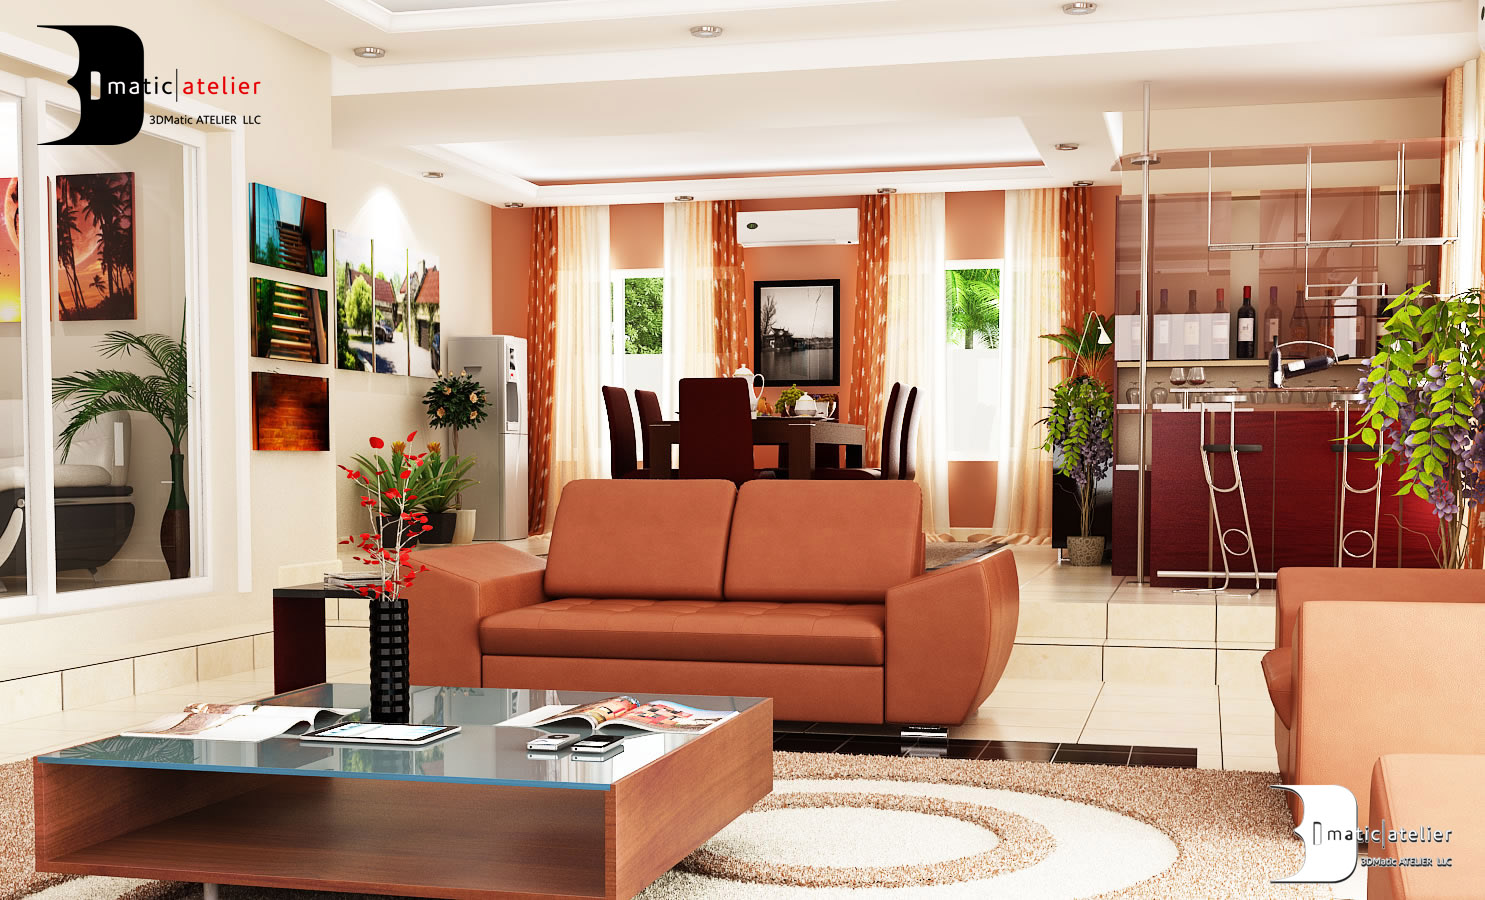 Interior design lekki nigeria by olamidun akinde at for Living room decoration in nigeria